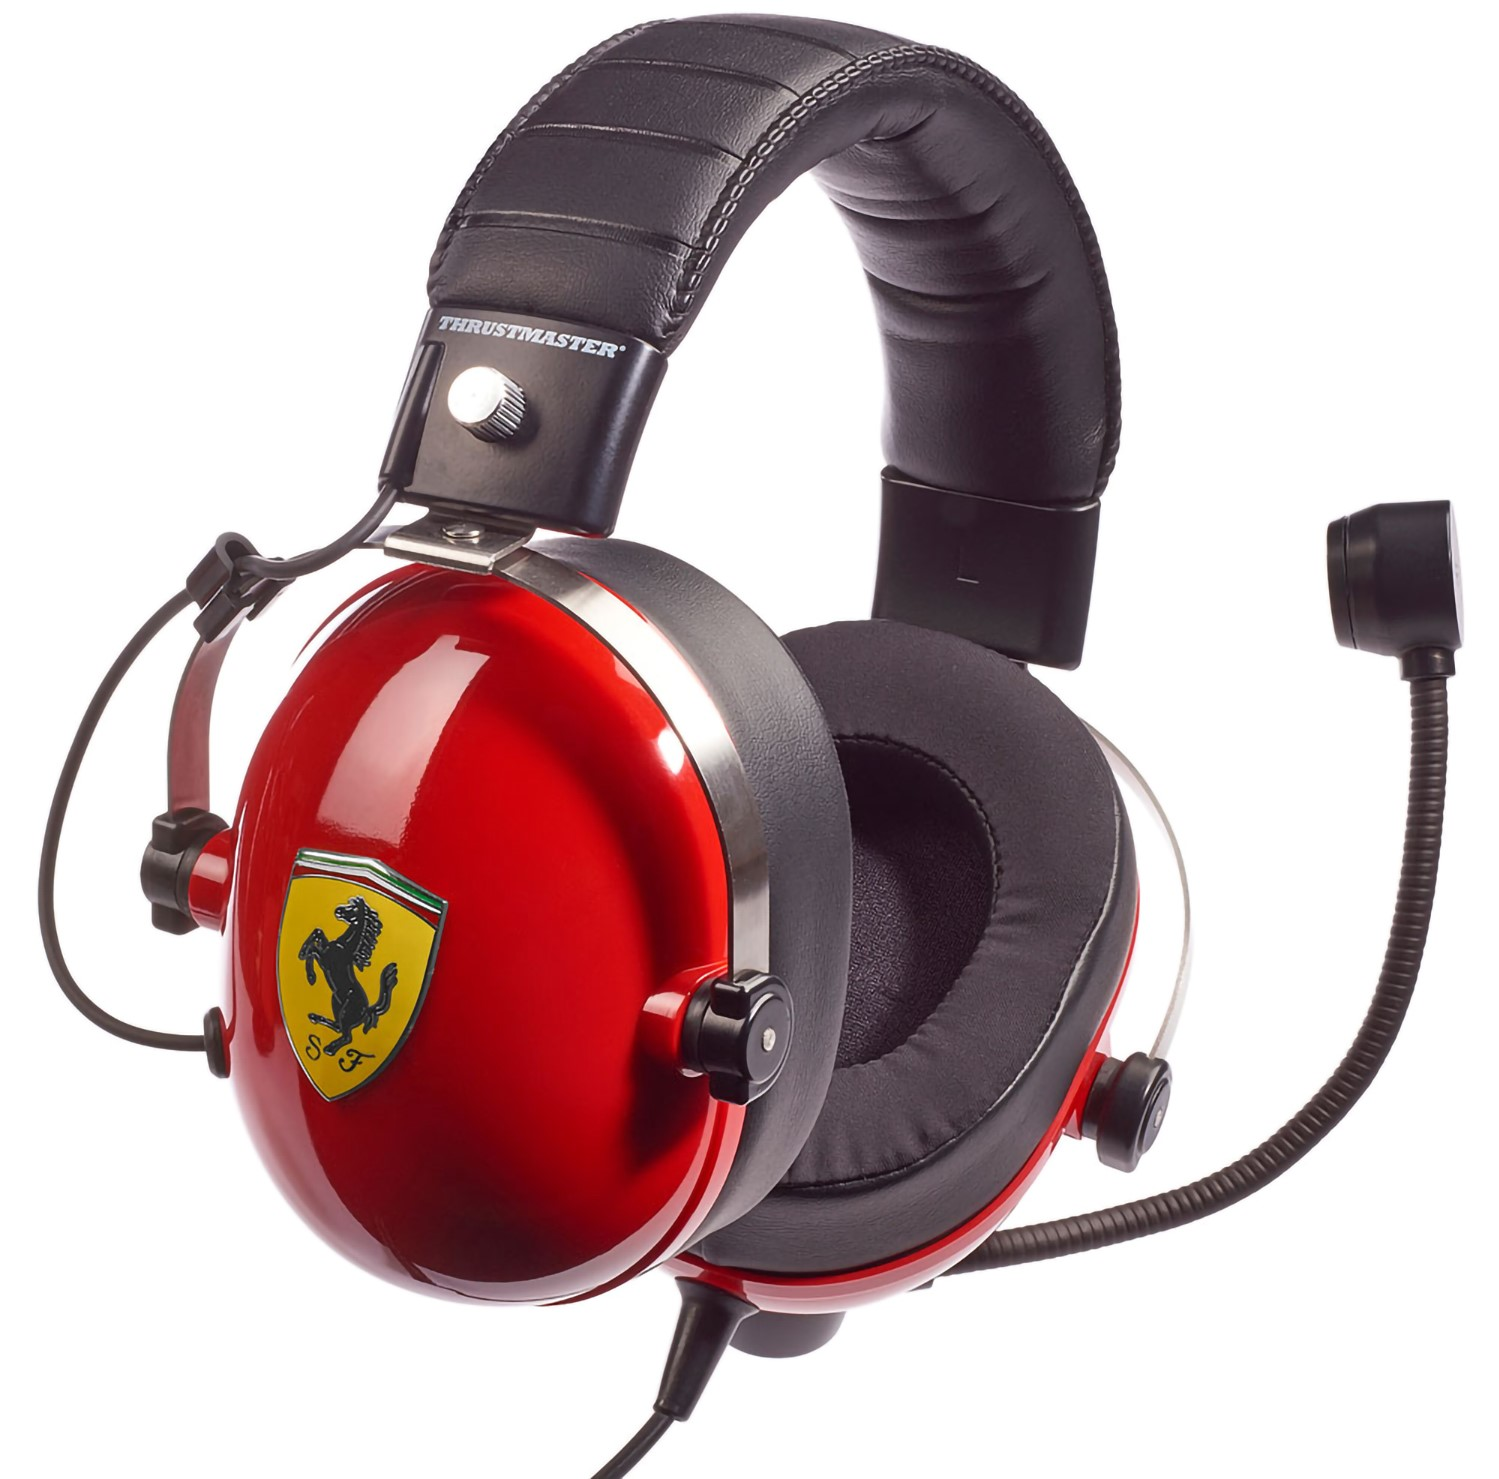 Гарнитура игровая Thrustmaster T.RACING Scuderia Ferrari Edition для Xbox One/PS 4/Nintendo Switch/3DS и ПК